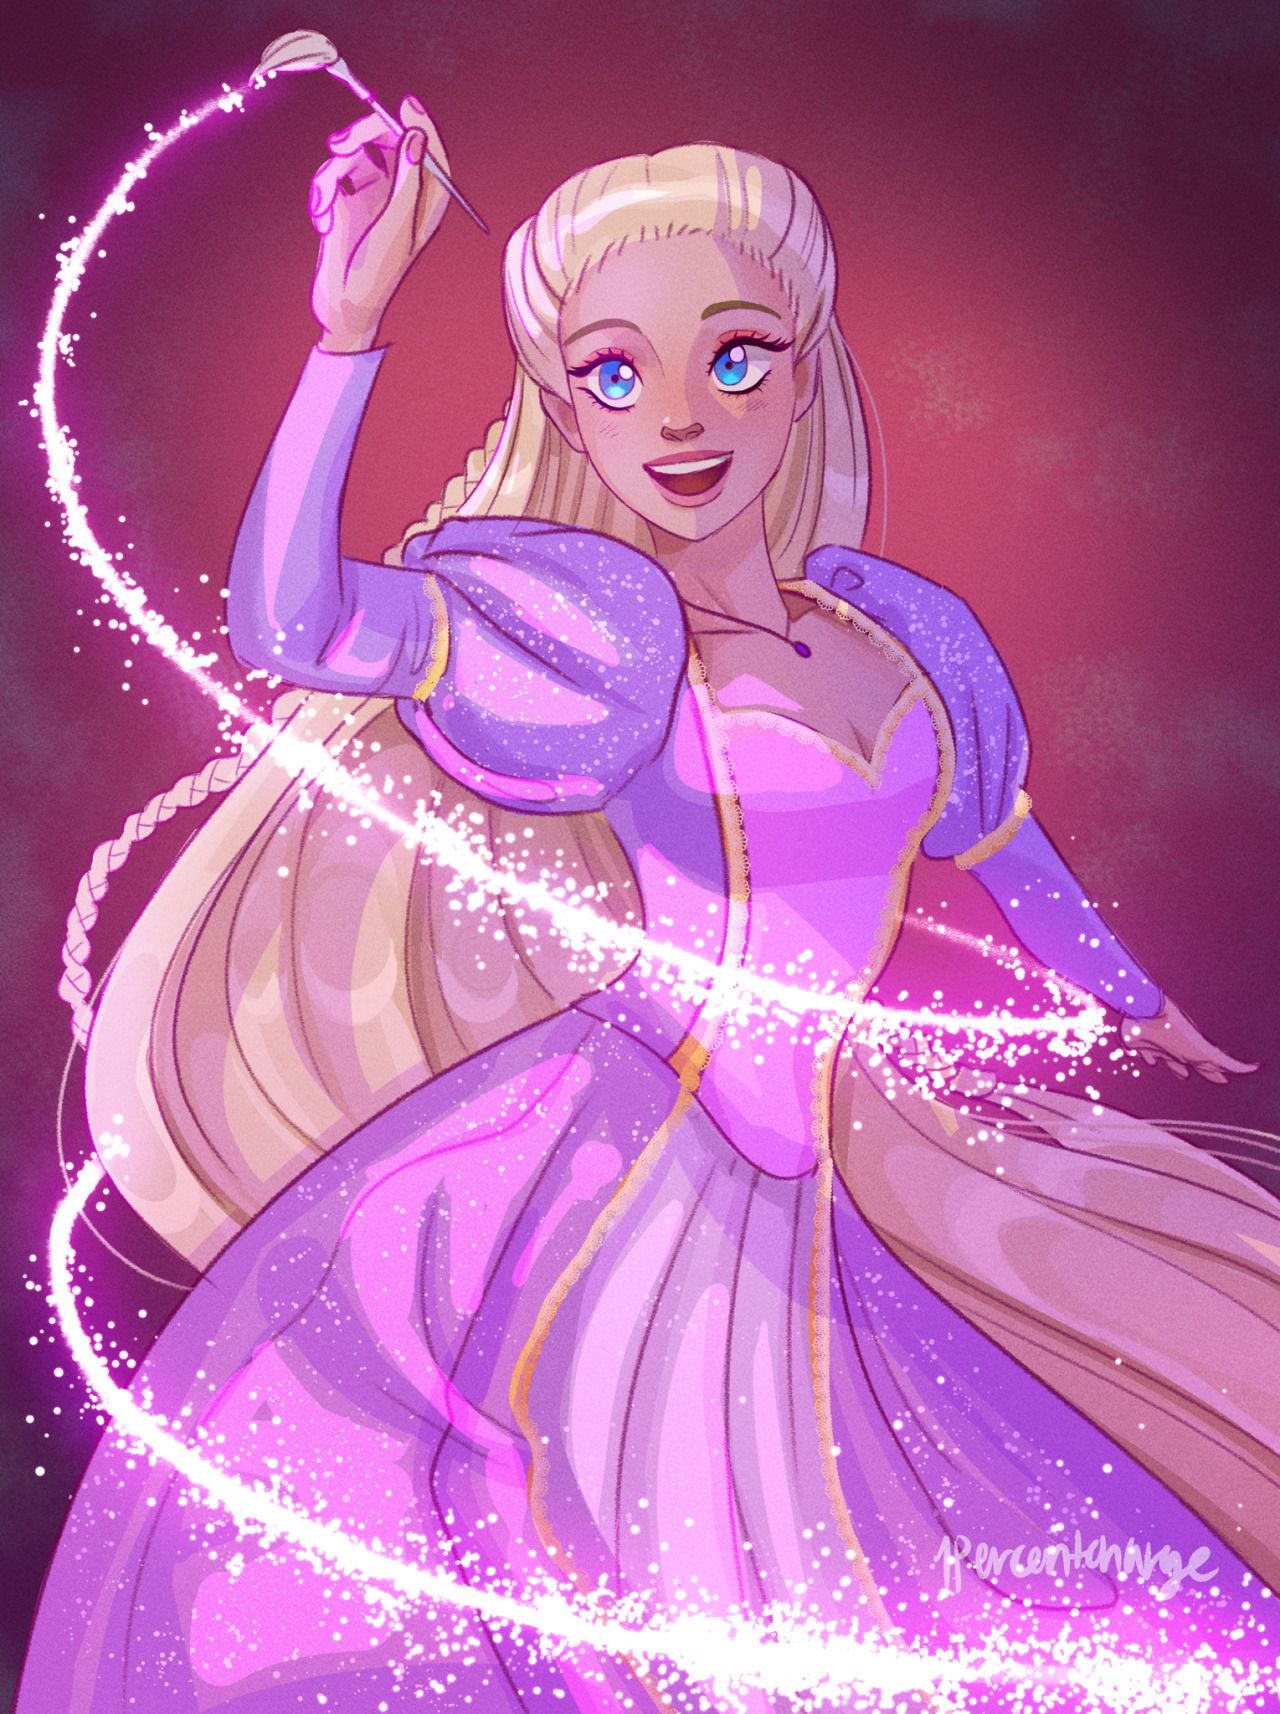 Hi Lol Man I M Envious Of The Ability To Magically Paint In 2021 Barbie Drawing Barbie Princess Disney Princess Art